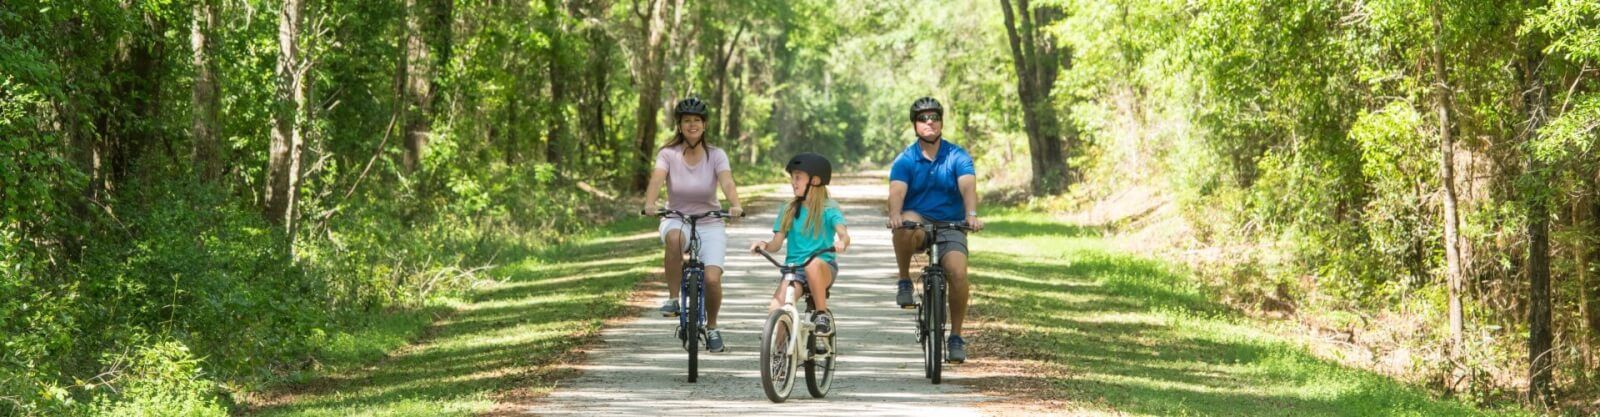 Family riding bikes on a path